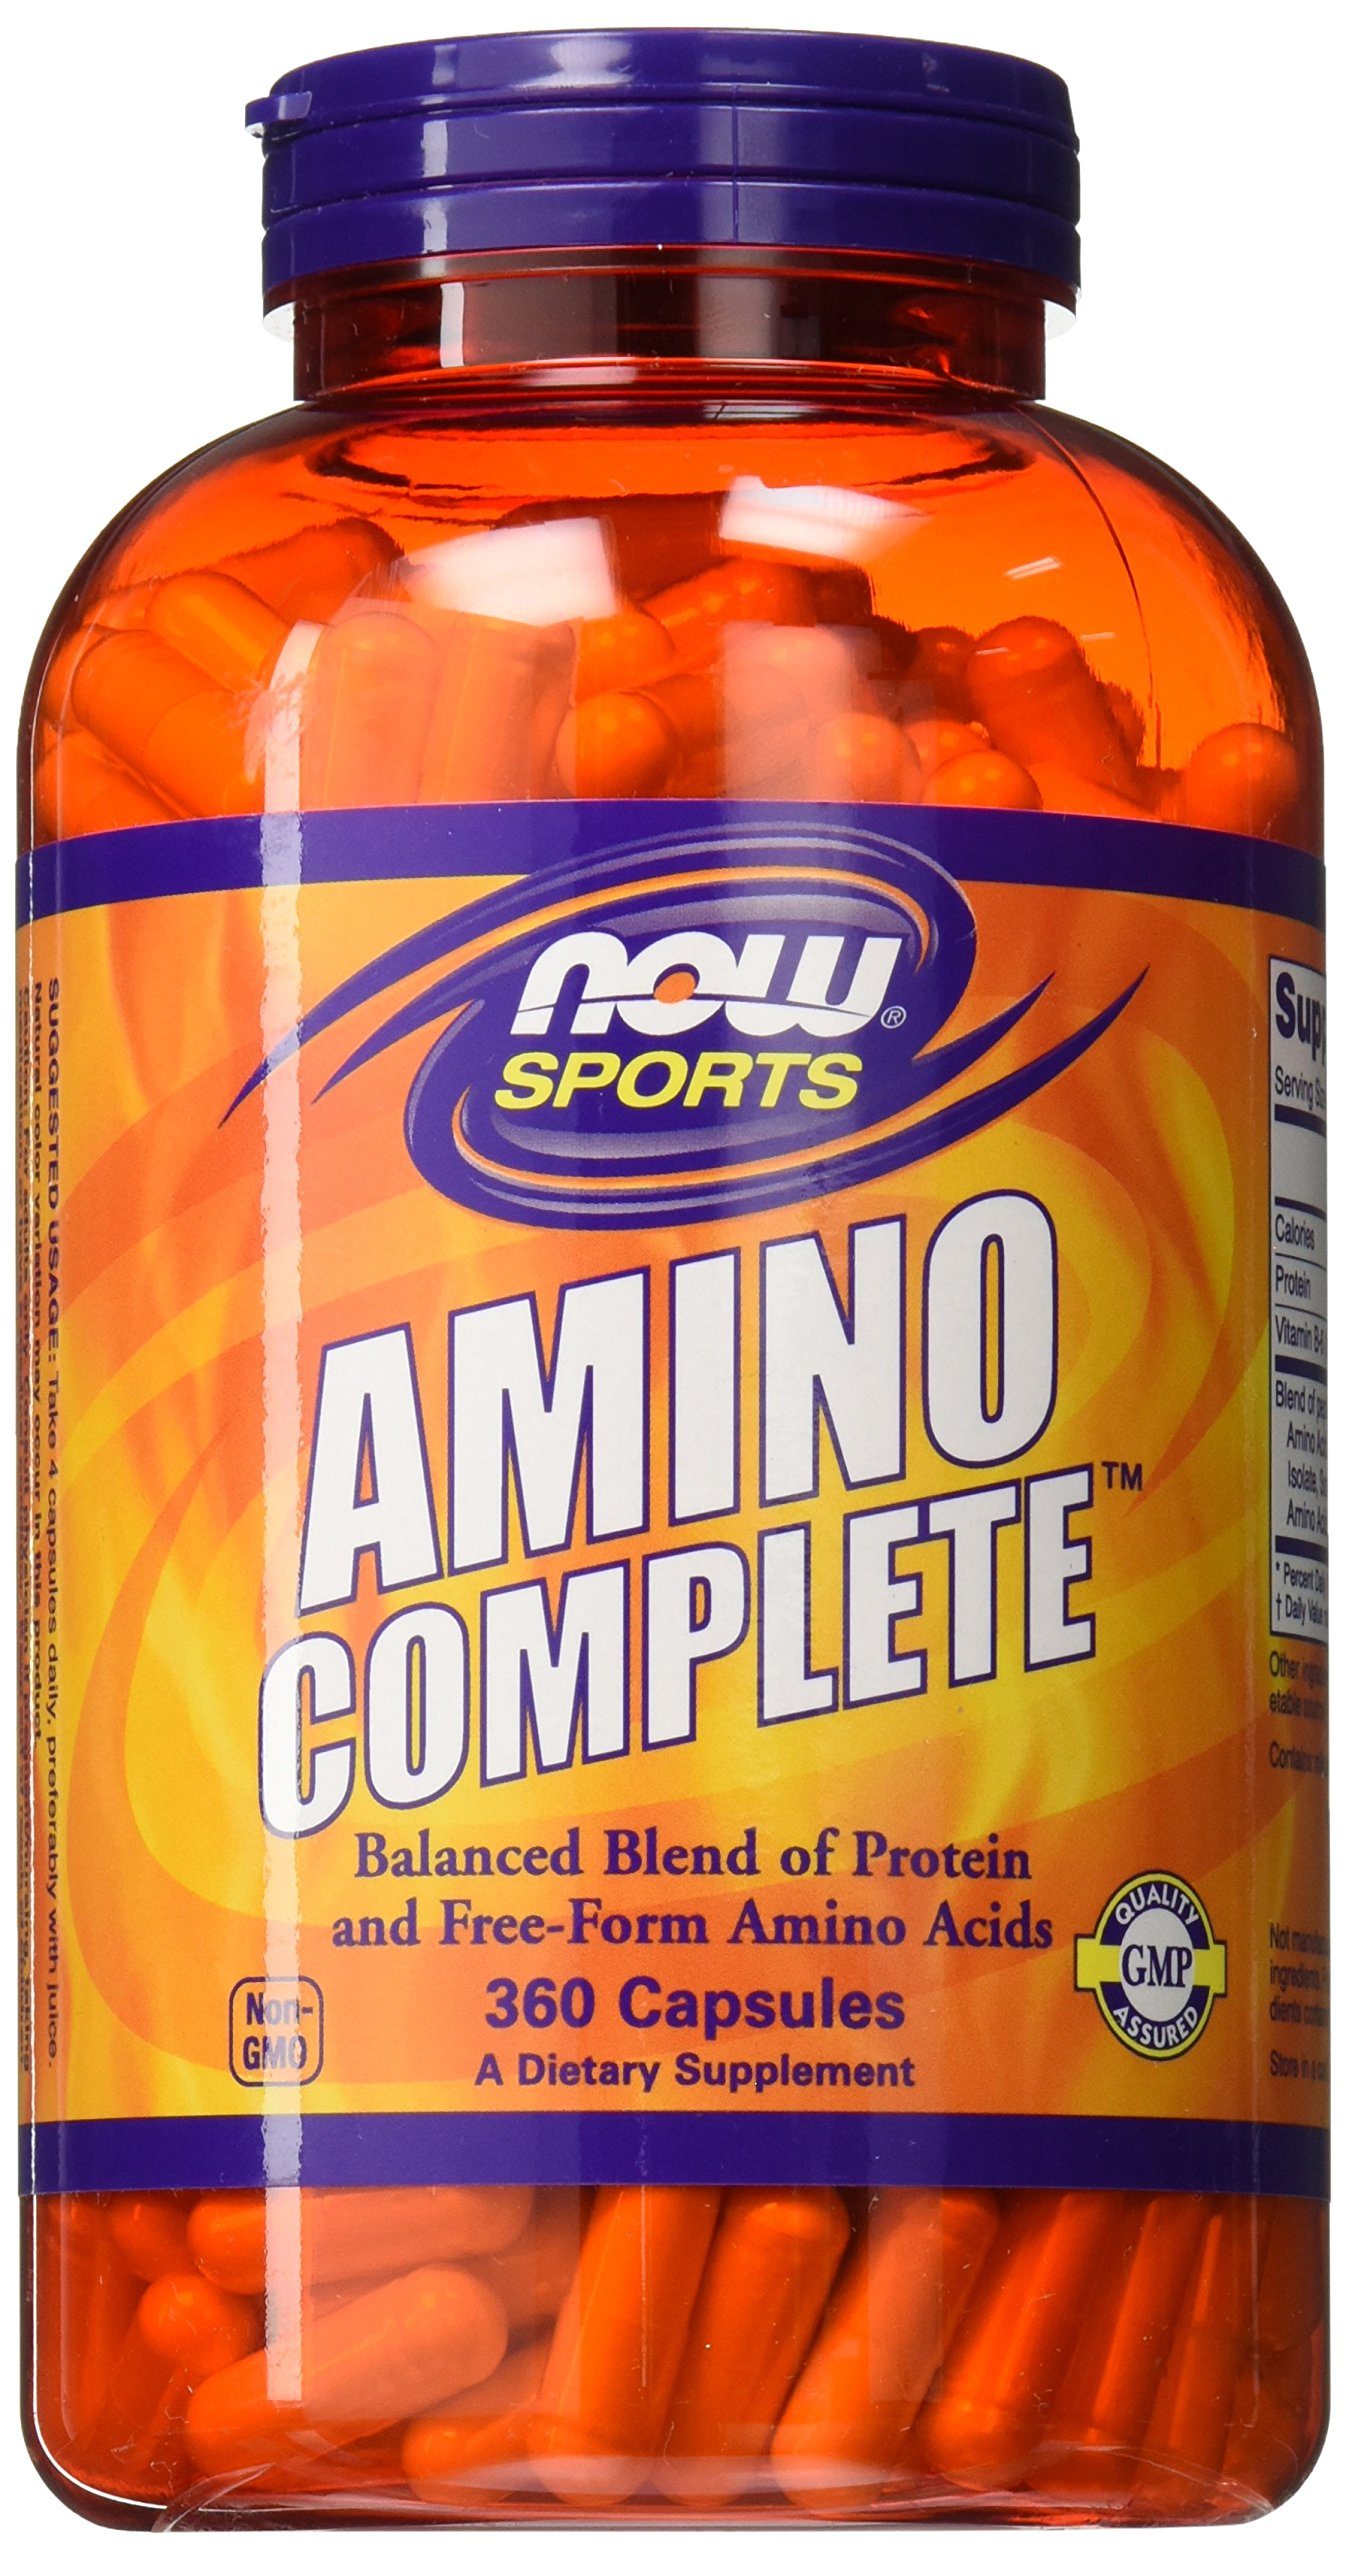 NOW Sports Amino Complete,360 Capsules